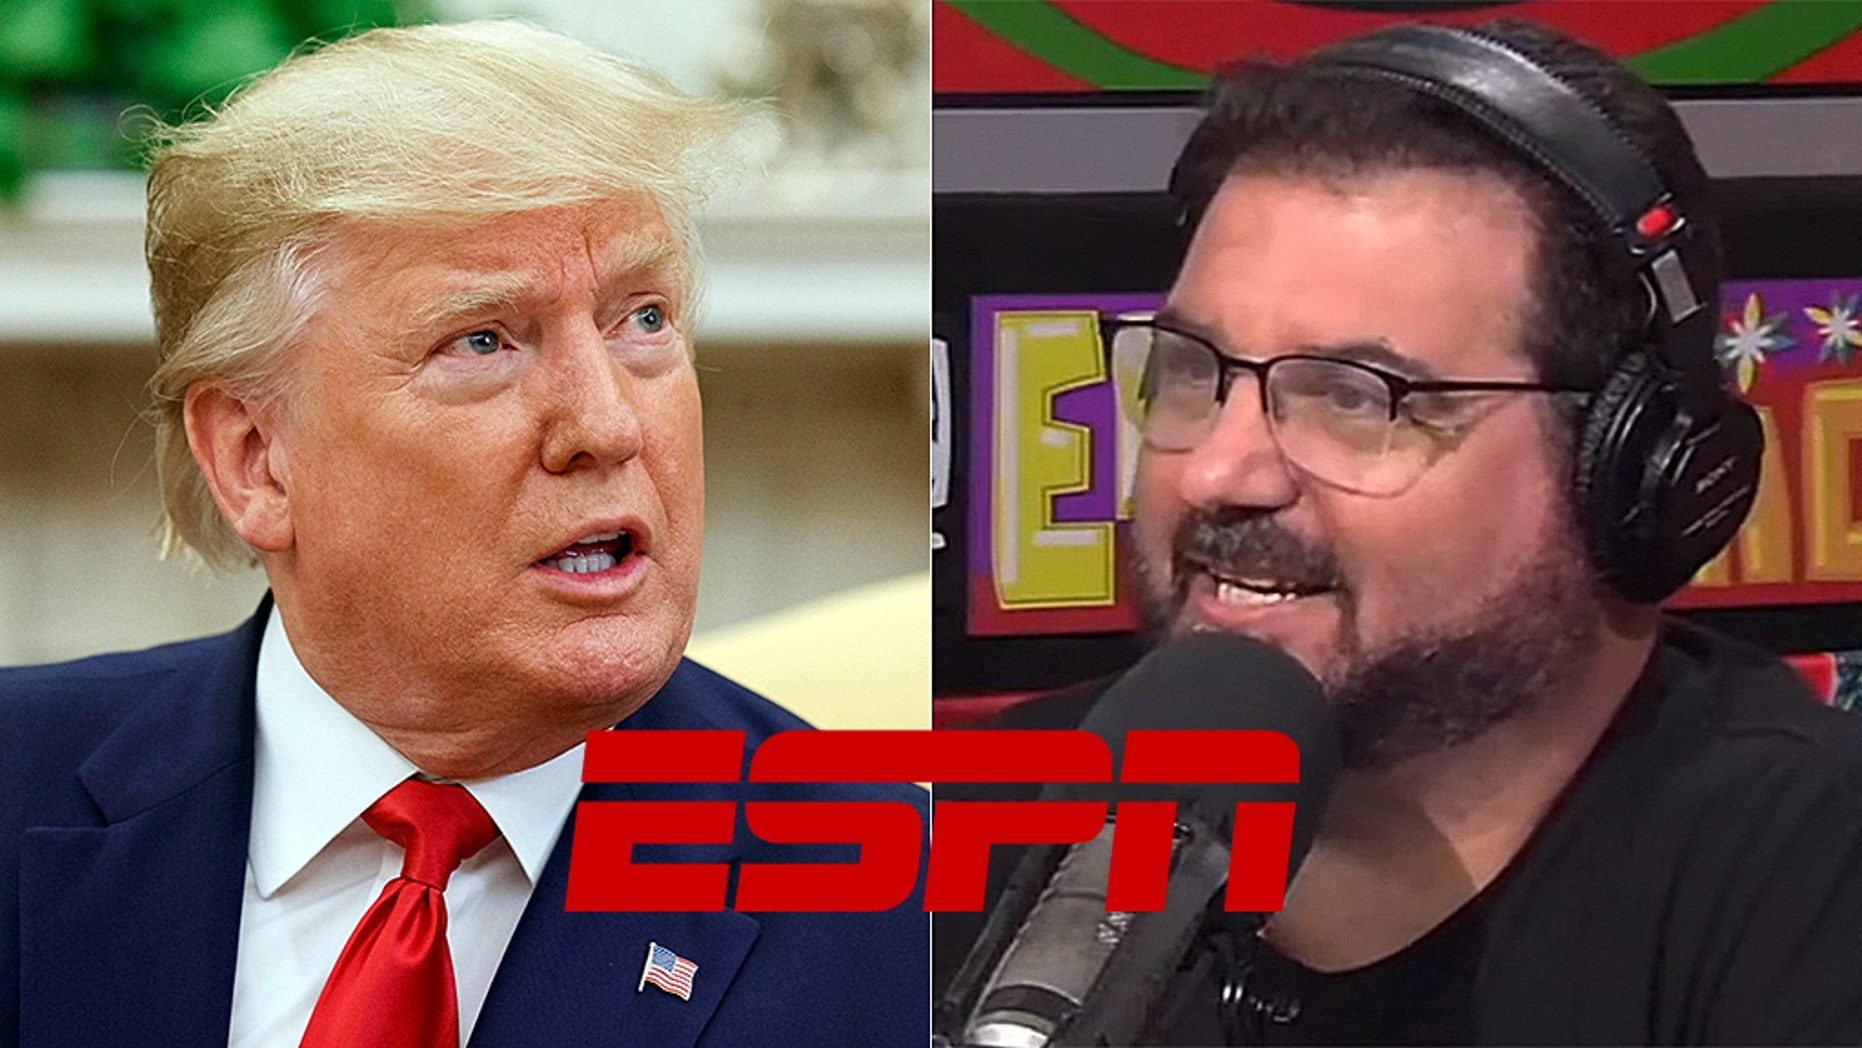 Dan Le Batard will remain at ESPN after meeting with network boss